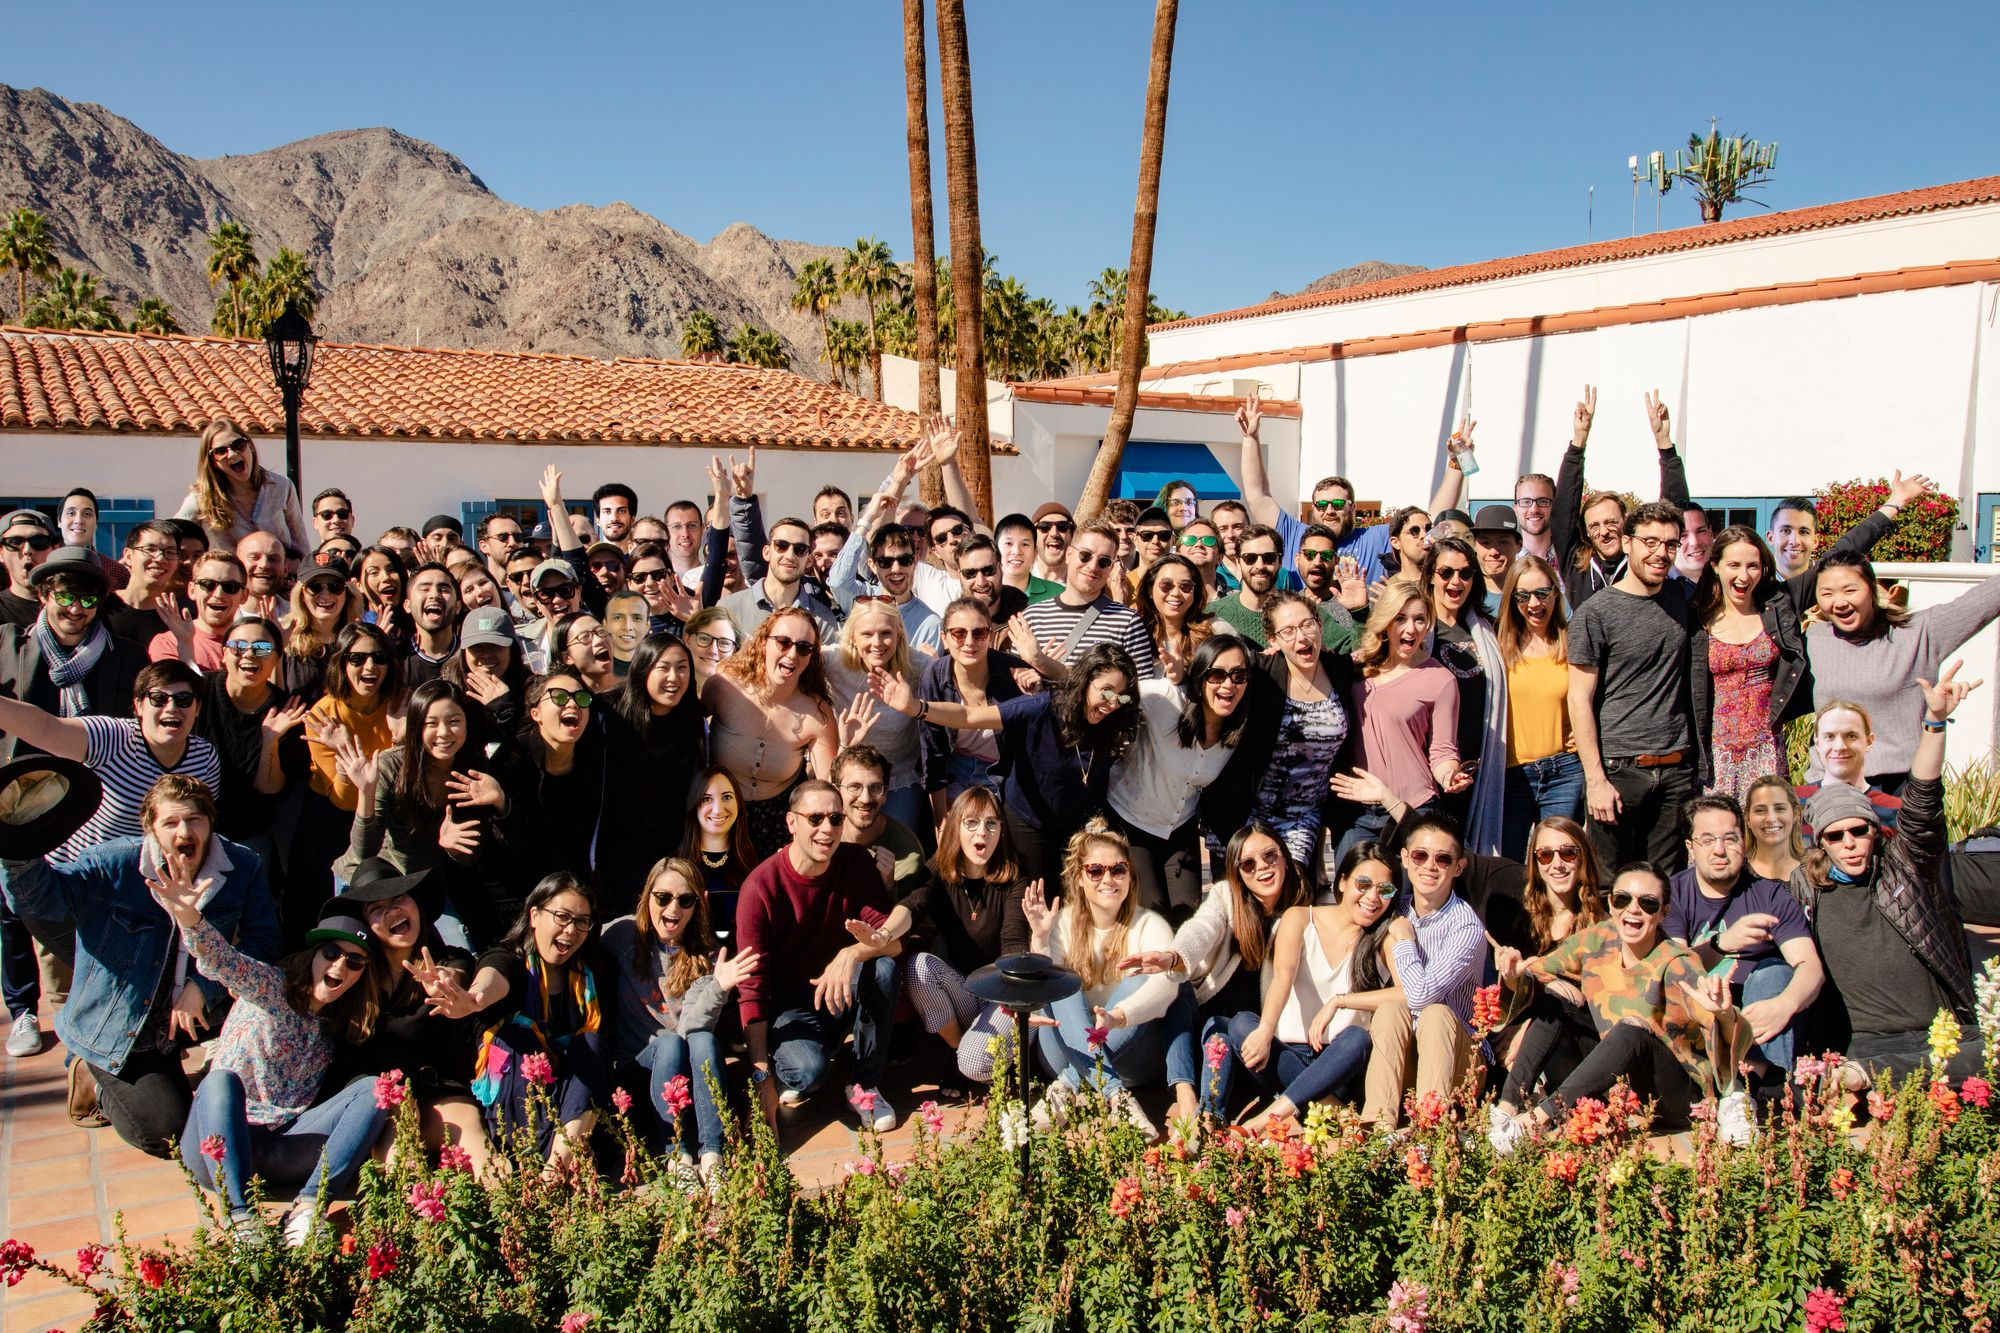 Front-eers at an offsite in Palm Springs in April 2019 for a week of ATV riding, team bonding, and customer service.